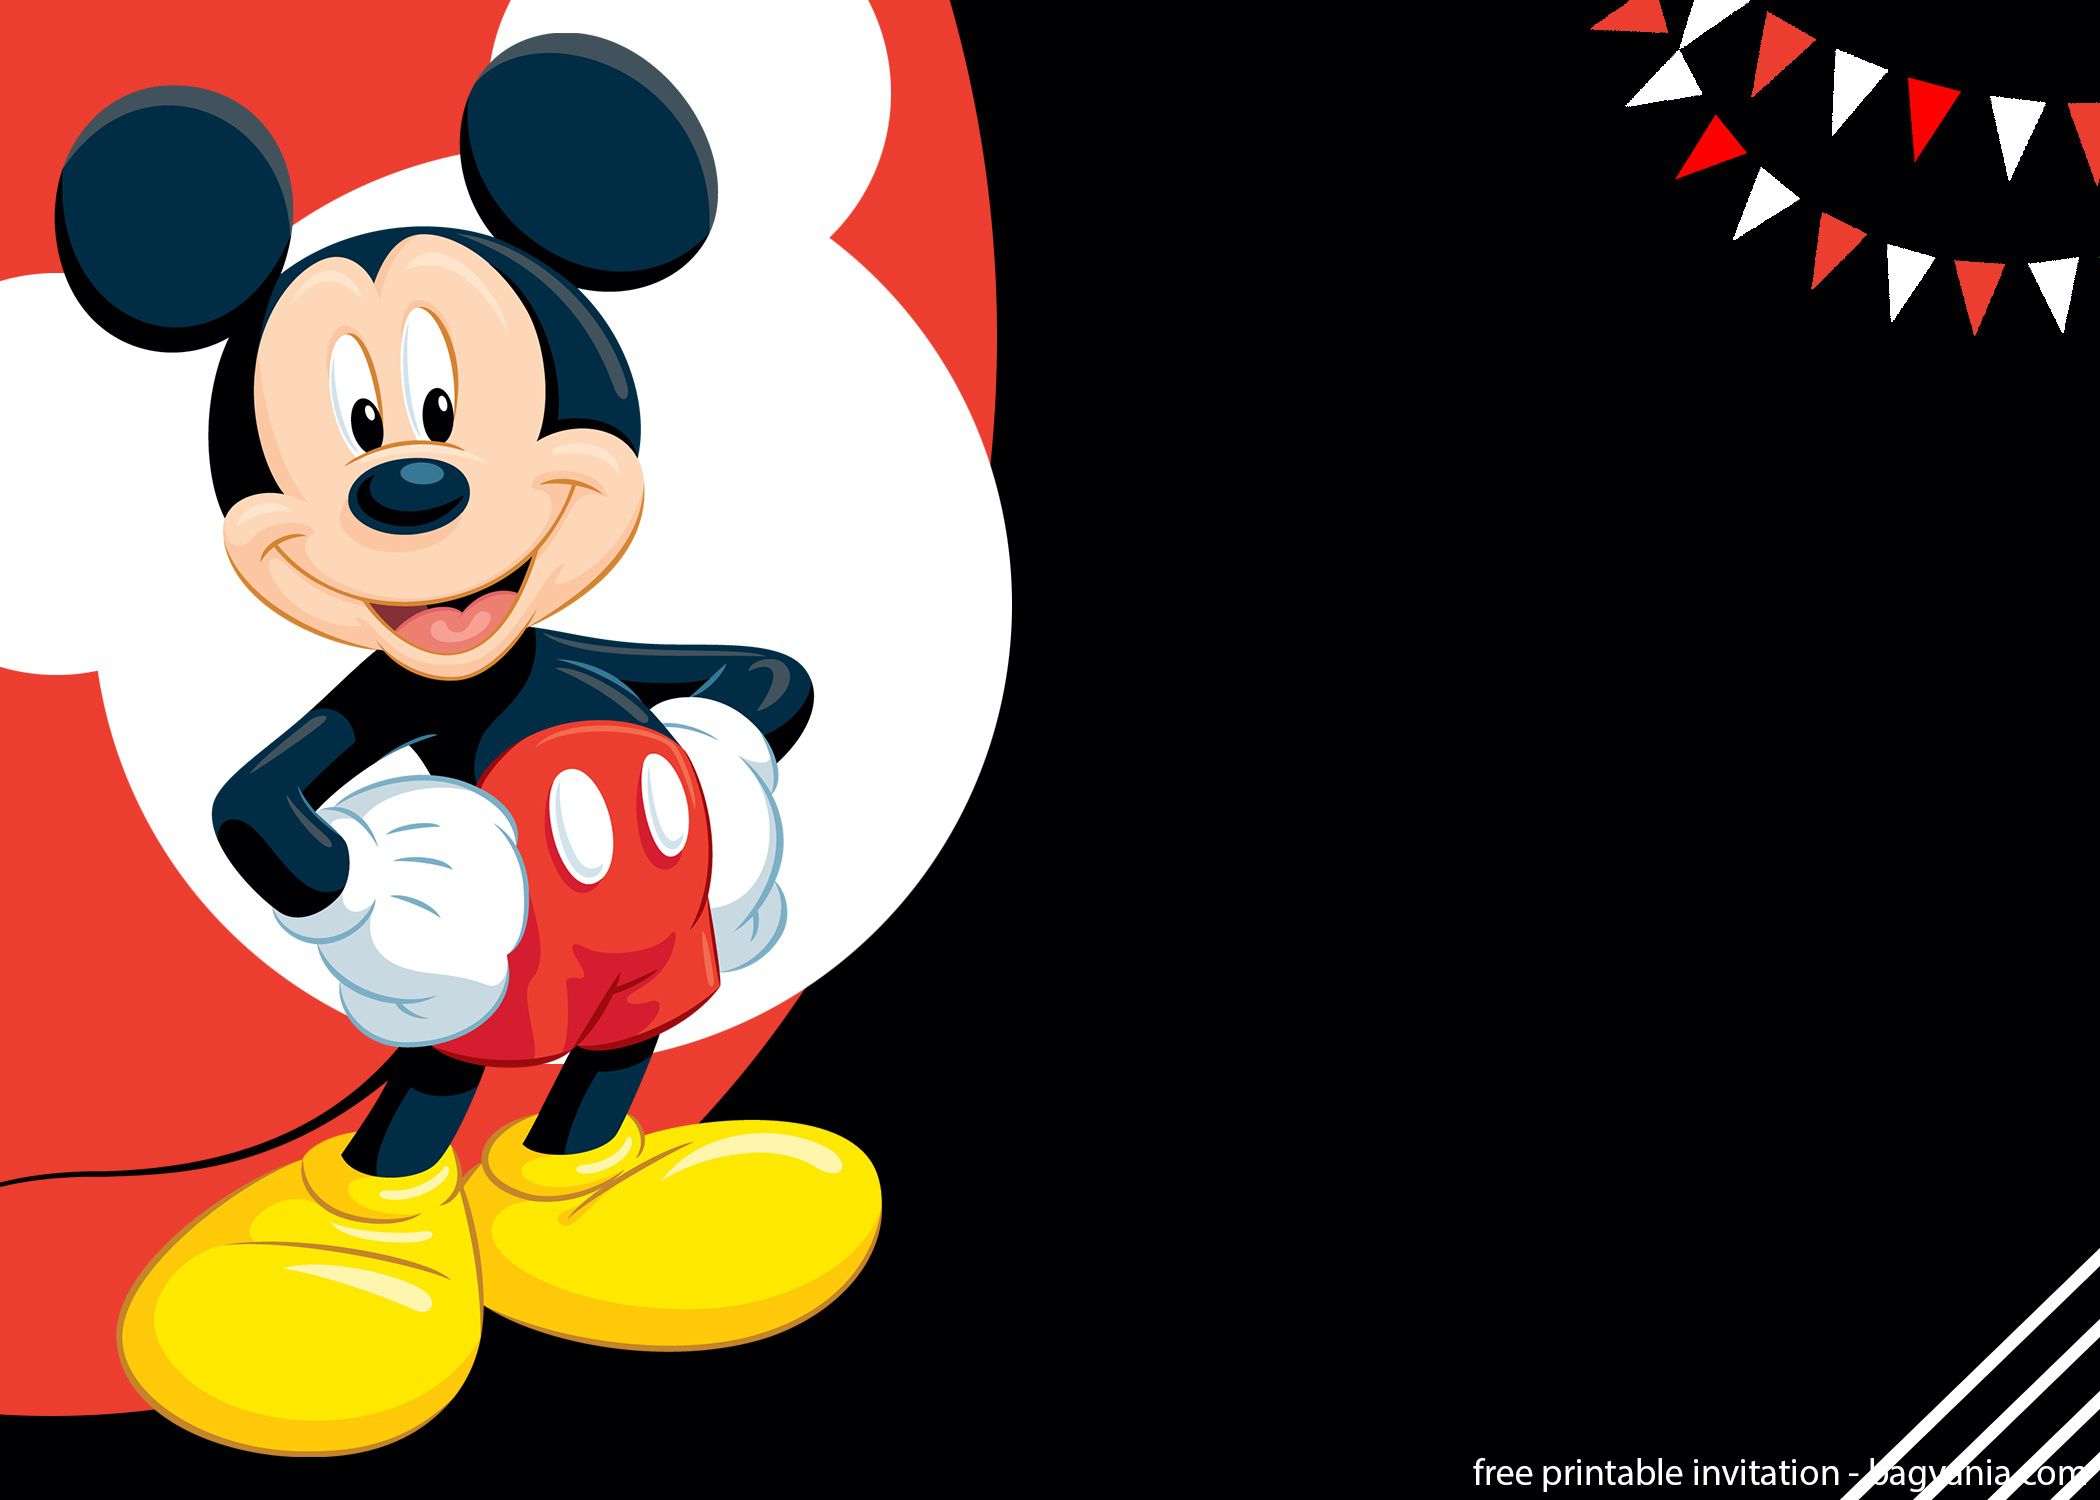 009 Unique Mickey Mouse Invitation Template Image  Templates Clubhouse Birthday Free 1st DownloadFull